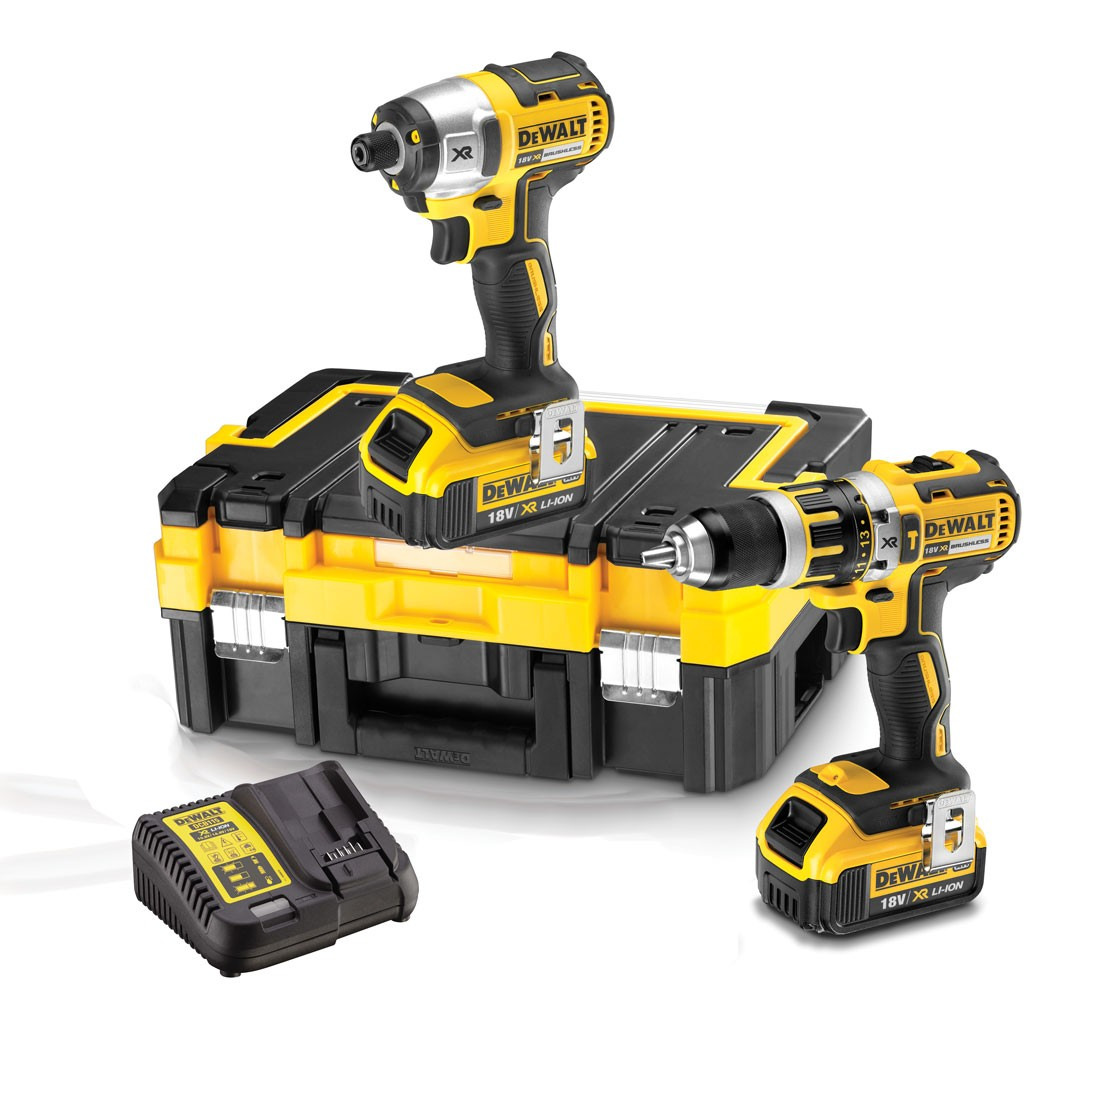 DeWalt DCK259M2T Combi Drill & Impact Driver Brushless Twin Kit inc 2x 4.0Ah Batts